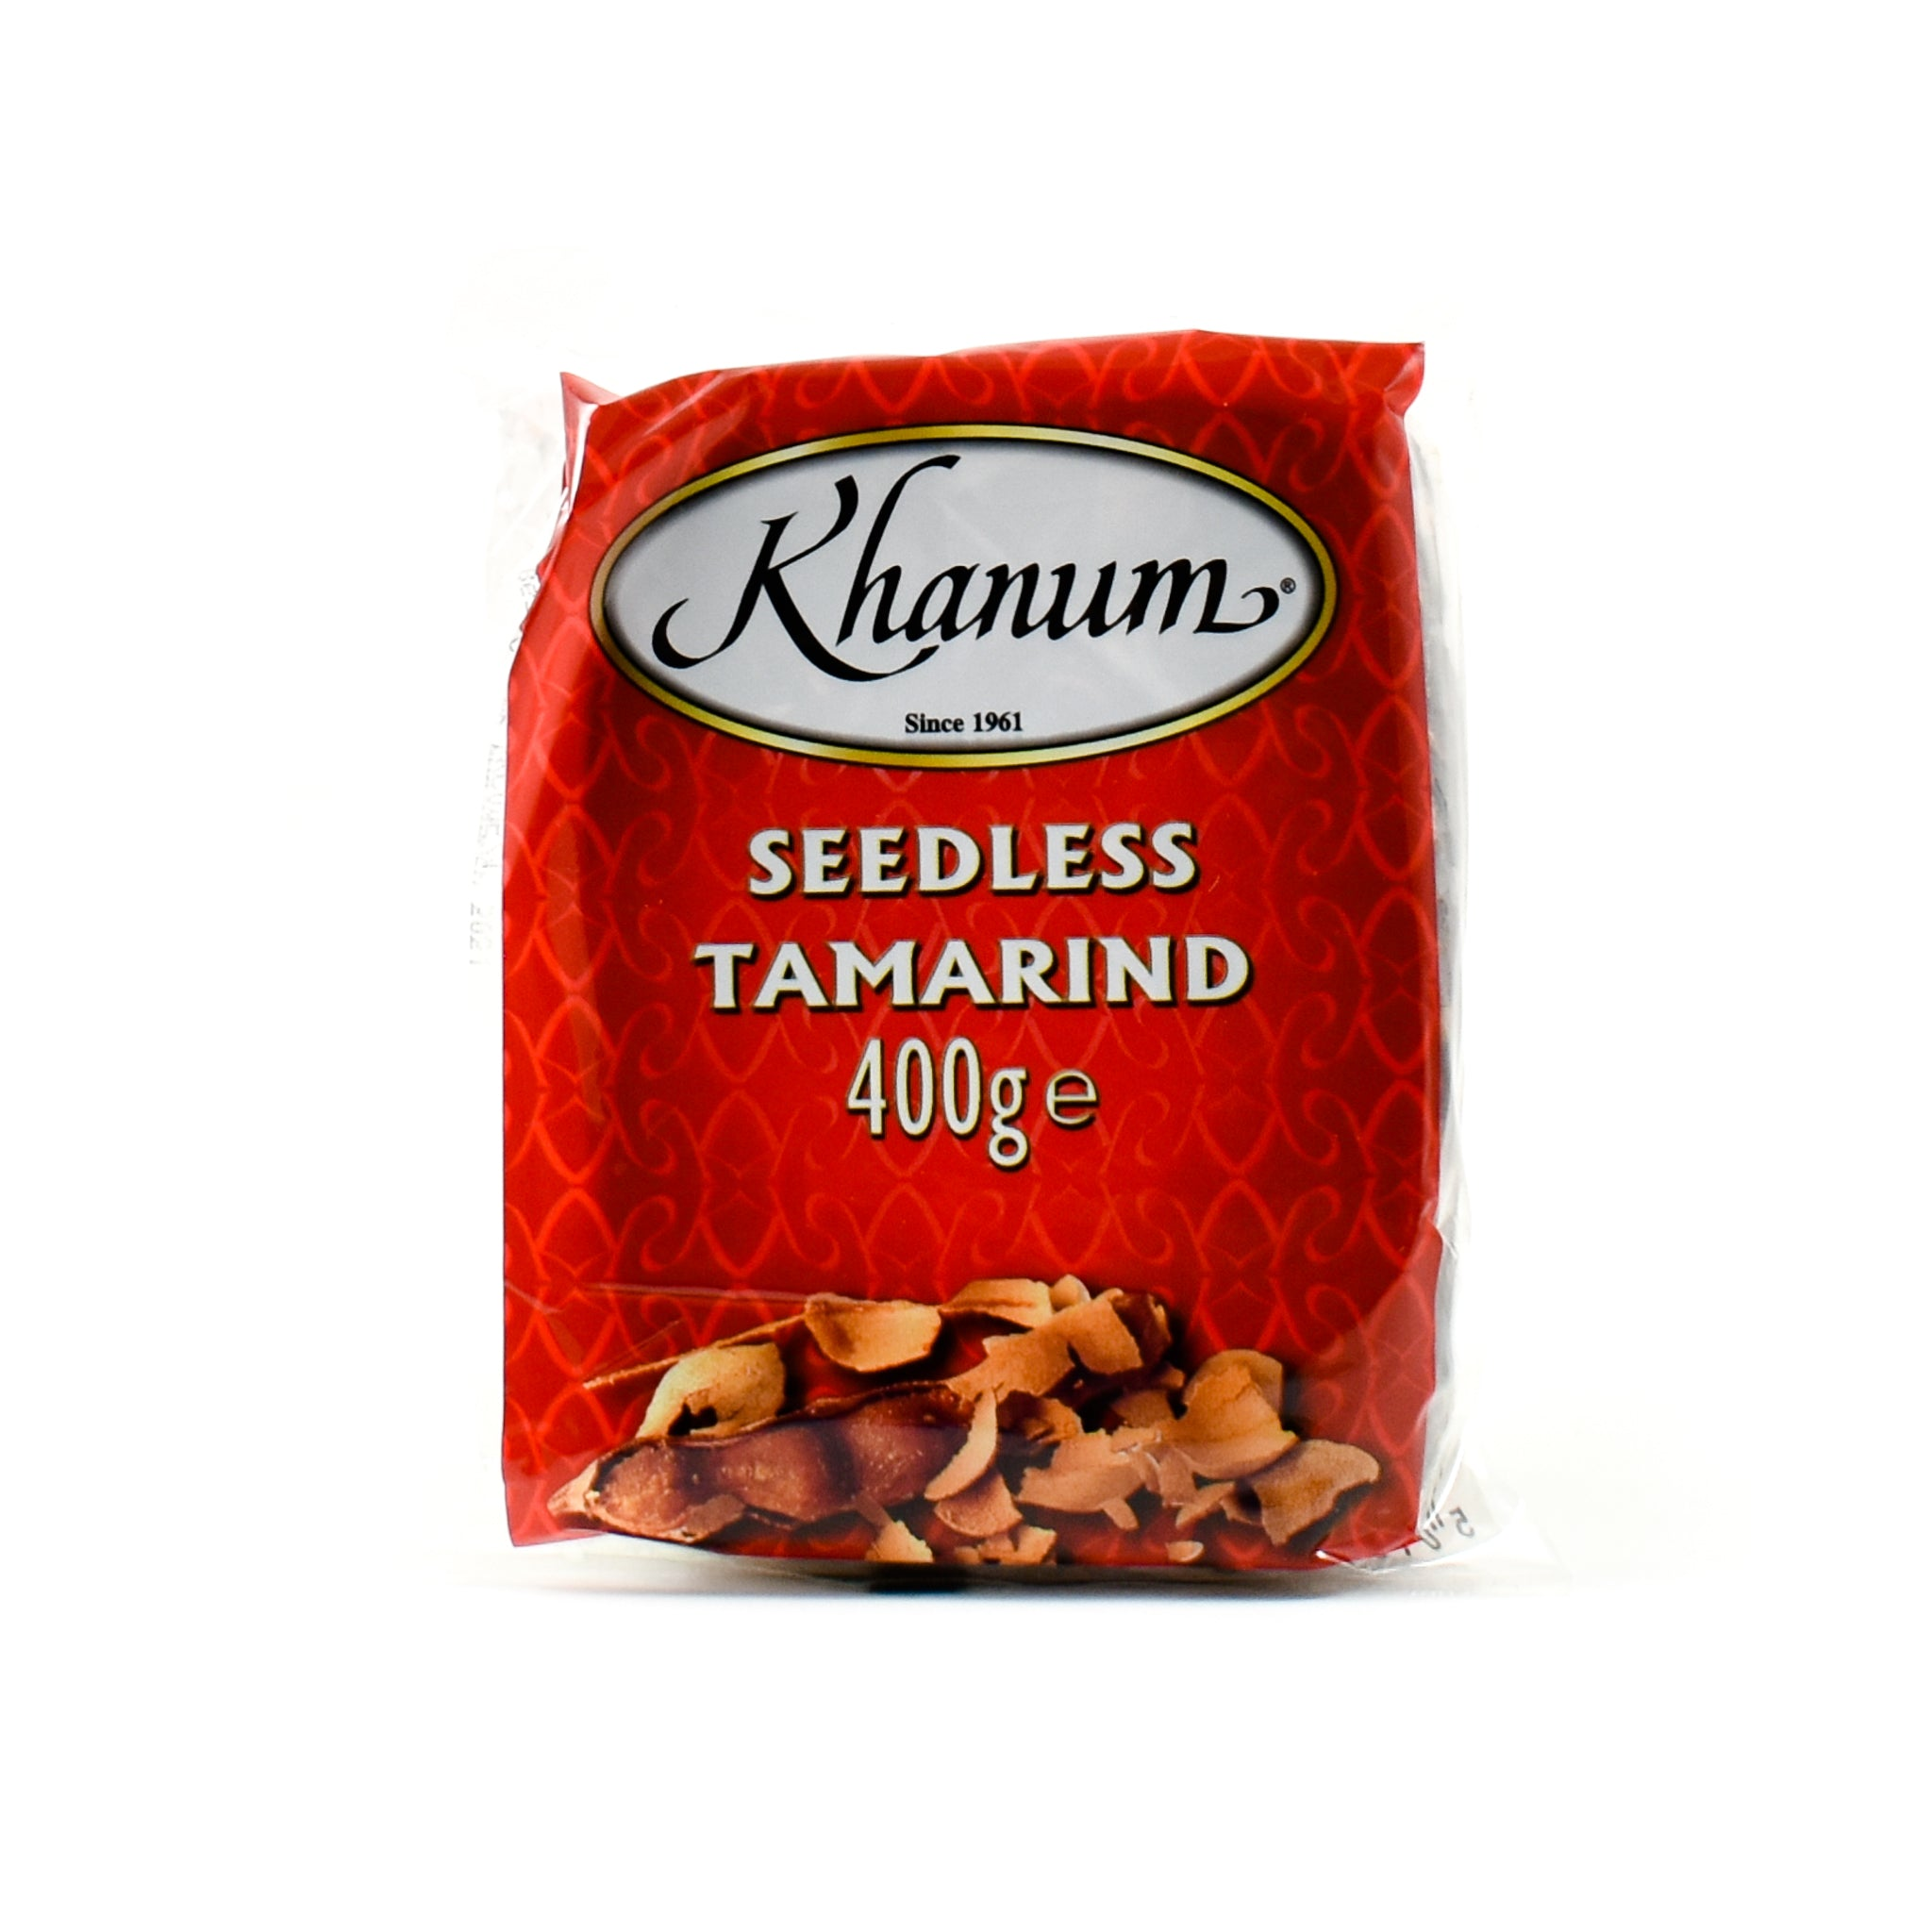 Khanum Seedless Tamarind 400g Ingredients Sauces & Condiments Asian Sauces & Condiments Southeast Asian Food